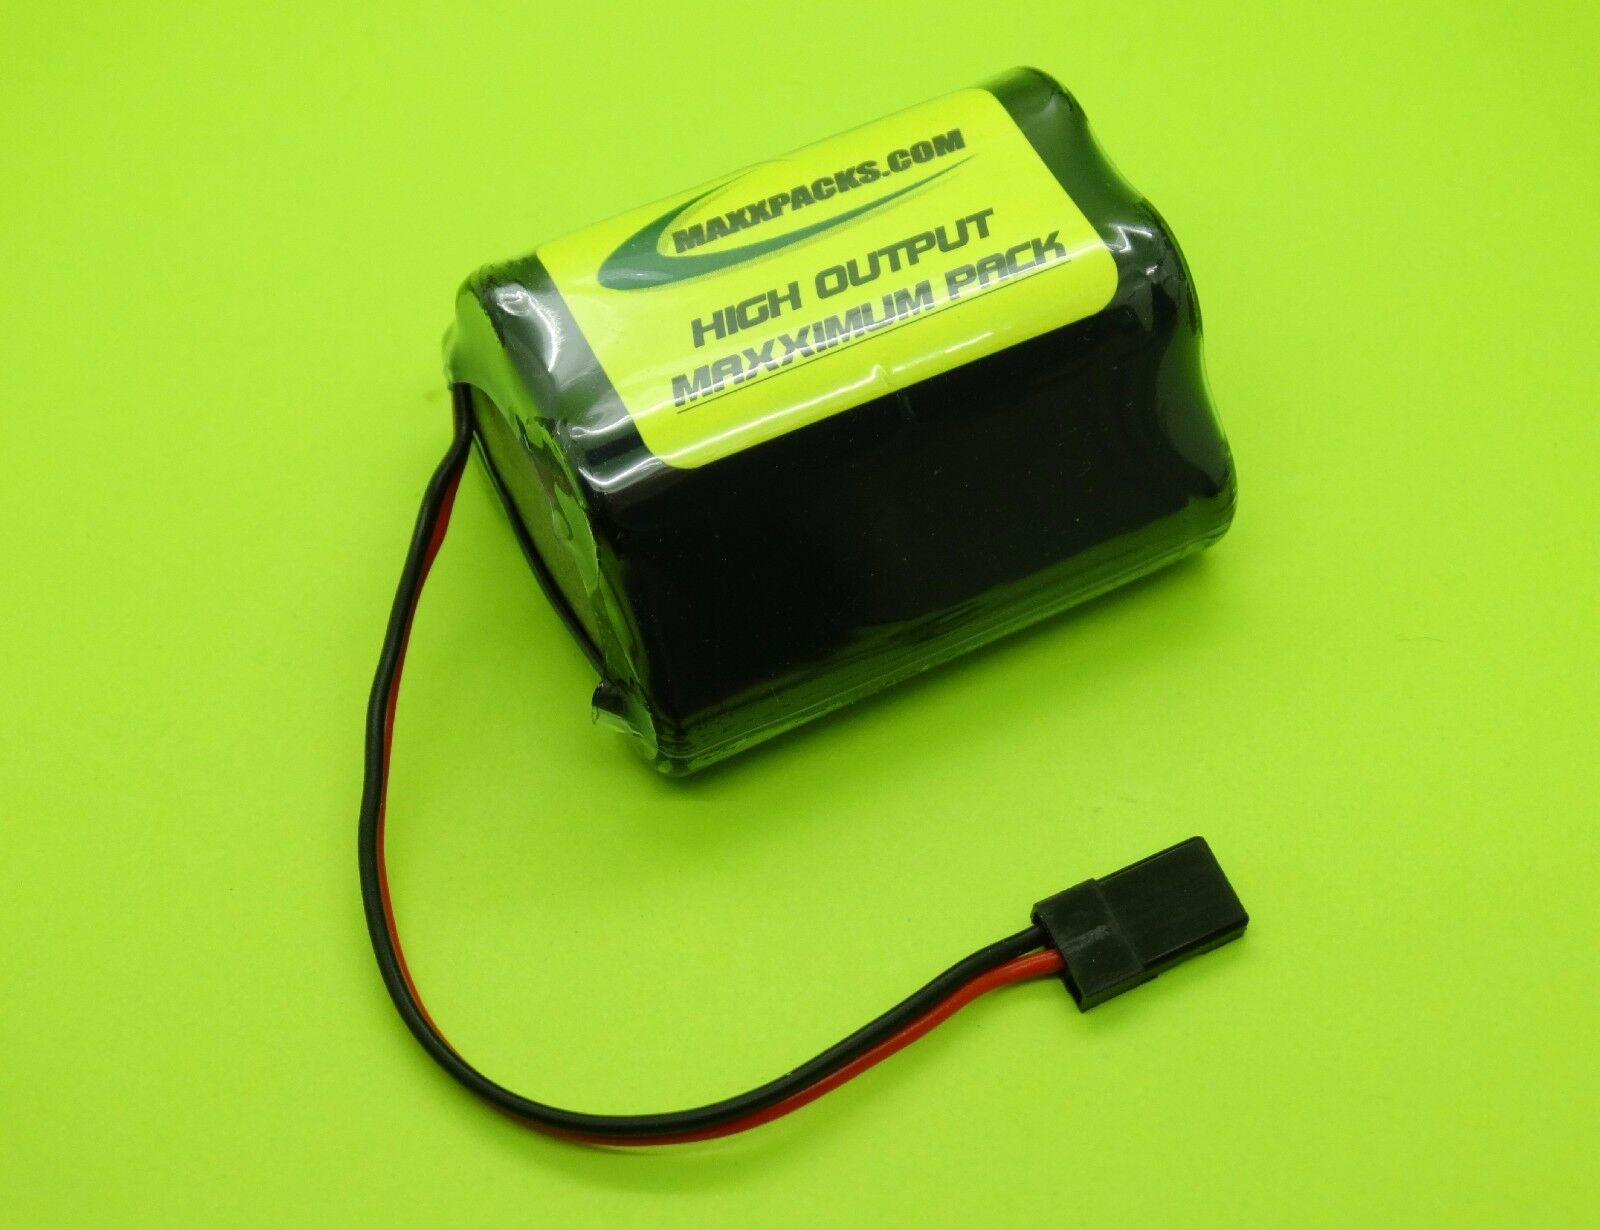 TWO TWO TWO 6v 2700 A HUMP Rx BATTERIES 4 RC JR CONNECTOR   MADE IN USA   2705H-U 75fe50